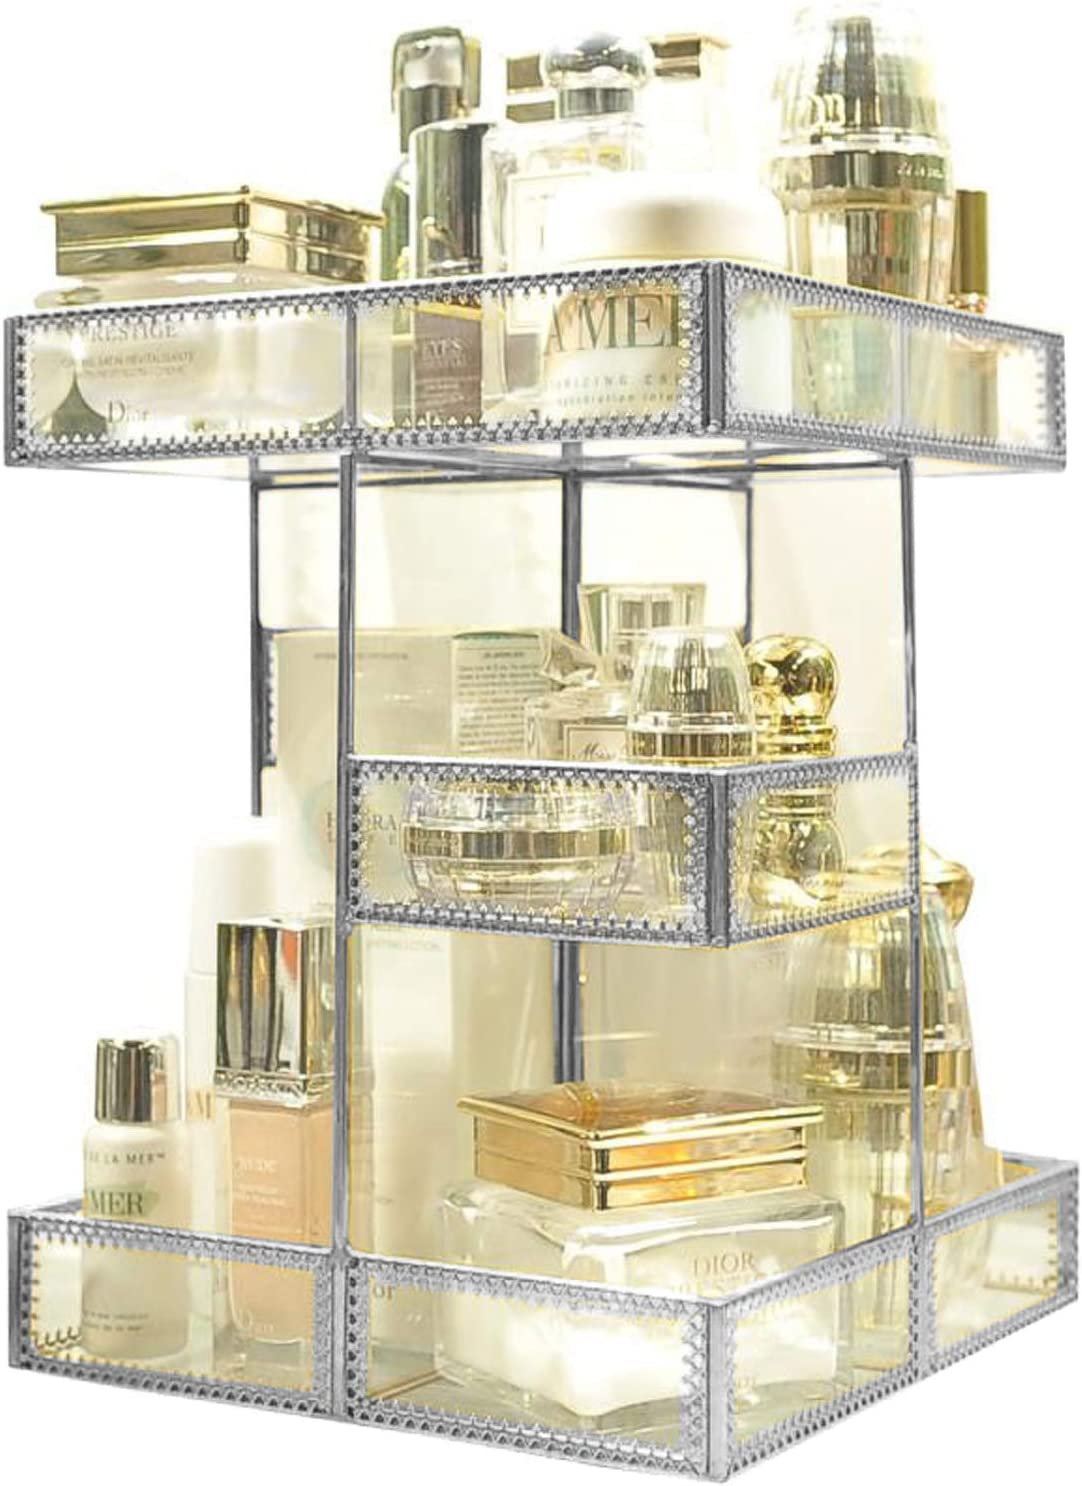 360 Degree Rotation Visible Skincare Organizer Antique Countertop Vanity Cosmetic Storage Mirror Glass Makeup Holder,Spin Large Capacity Storage for Brushes Lipsticks Skincare Toner (Silver)